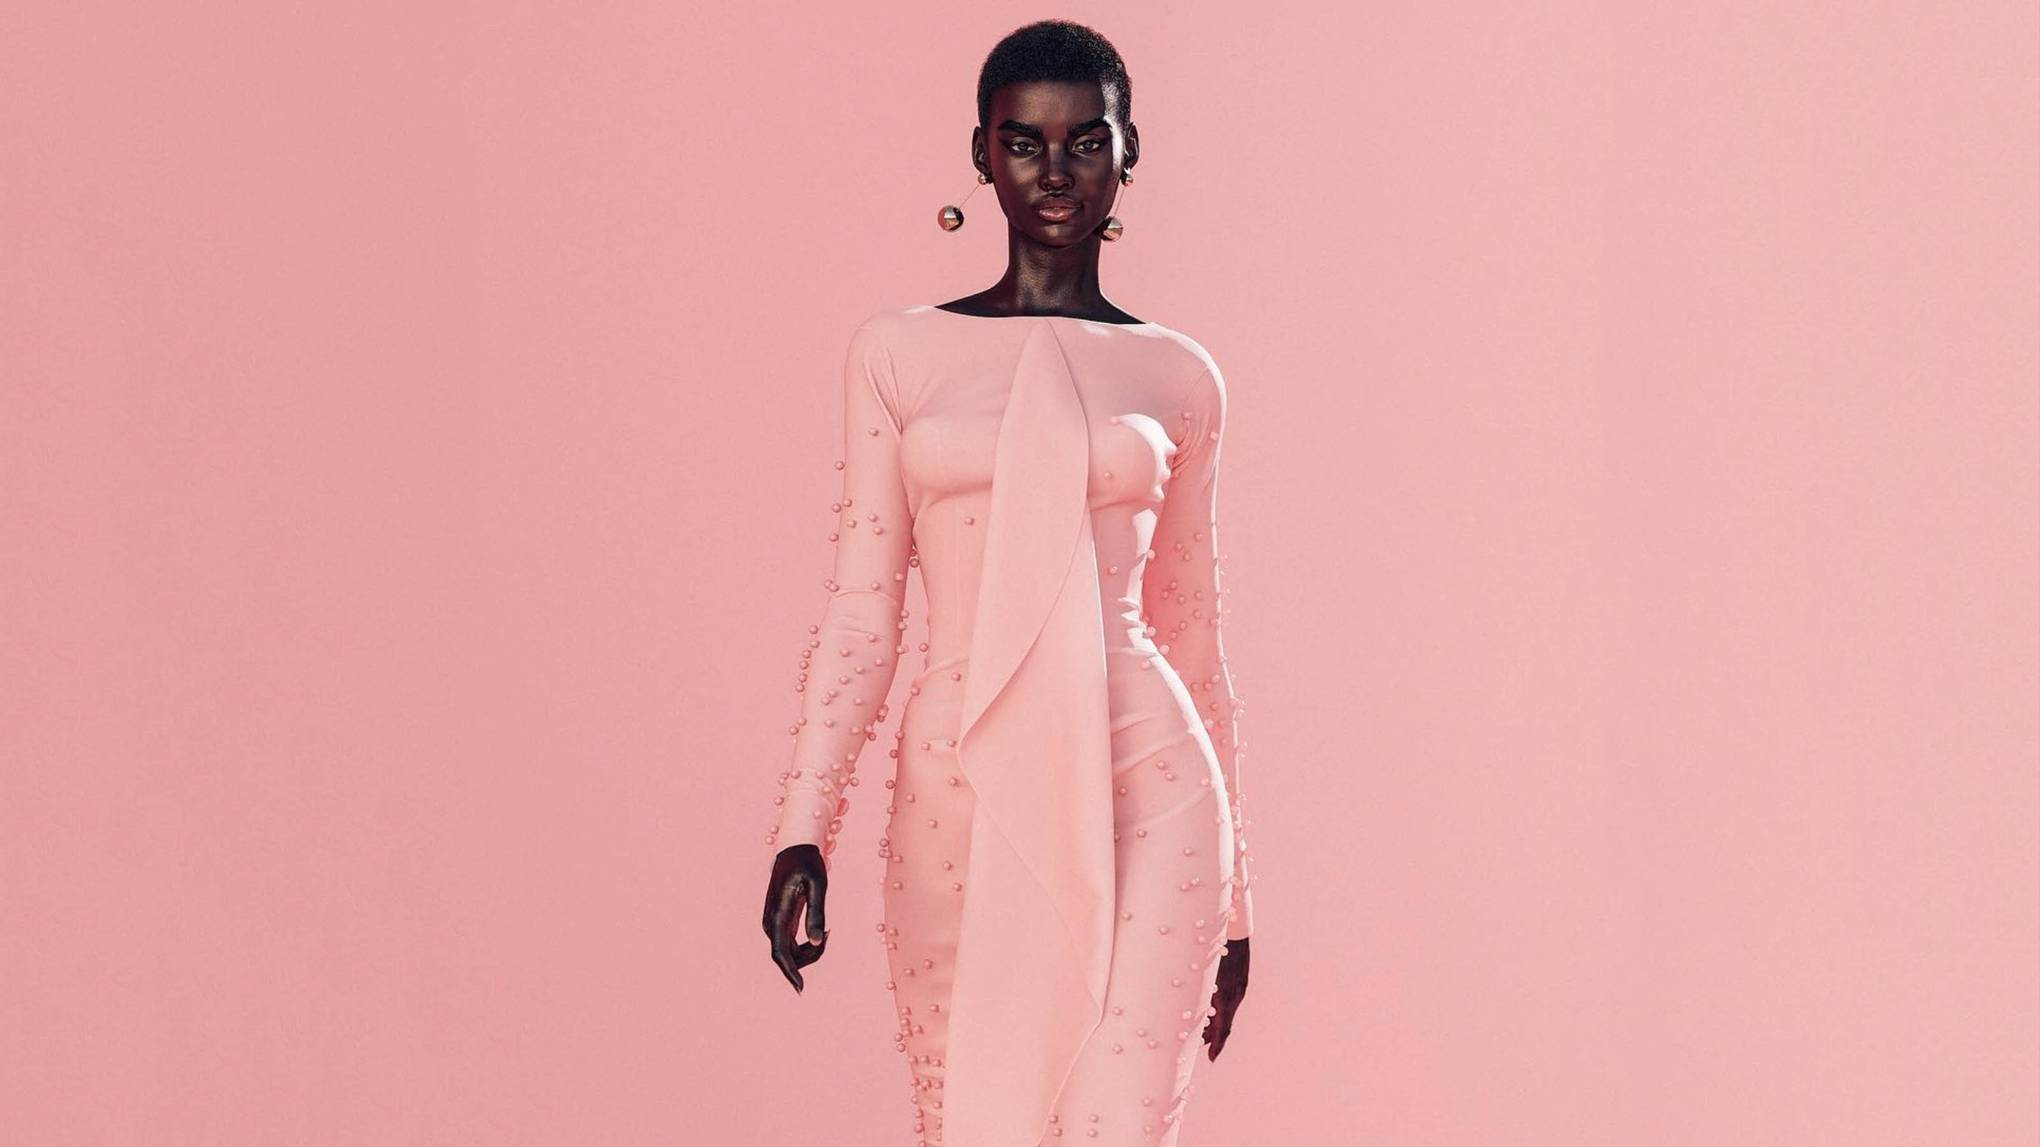 Virtual Supermodels Like Shudu Gram Are Taking Over Social Media